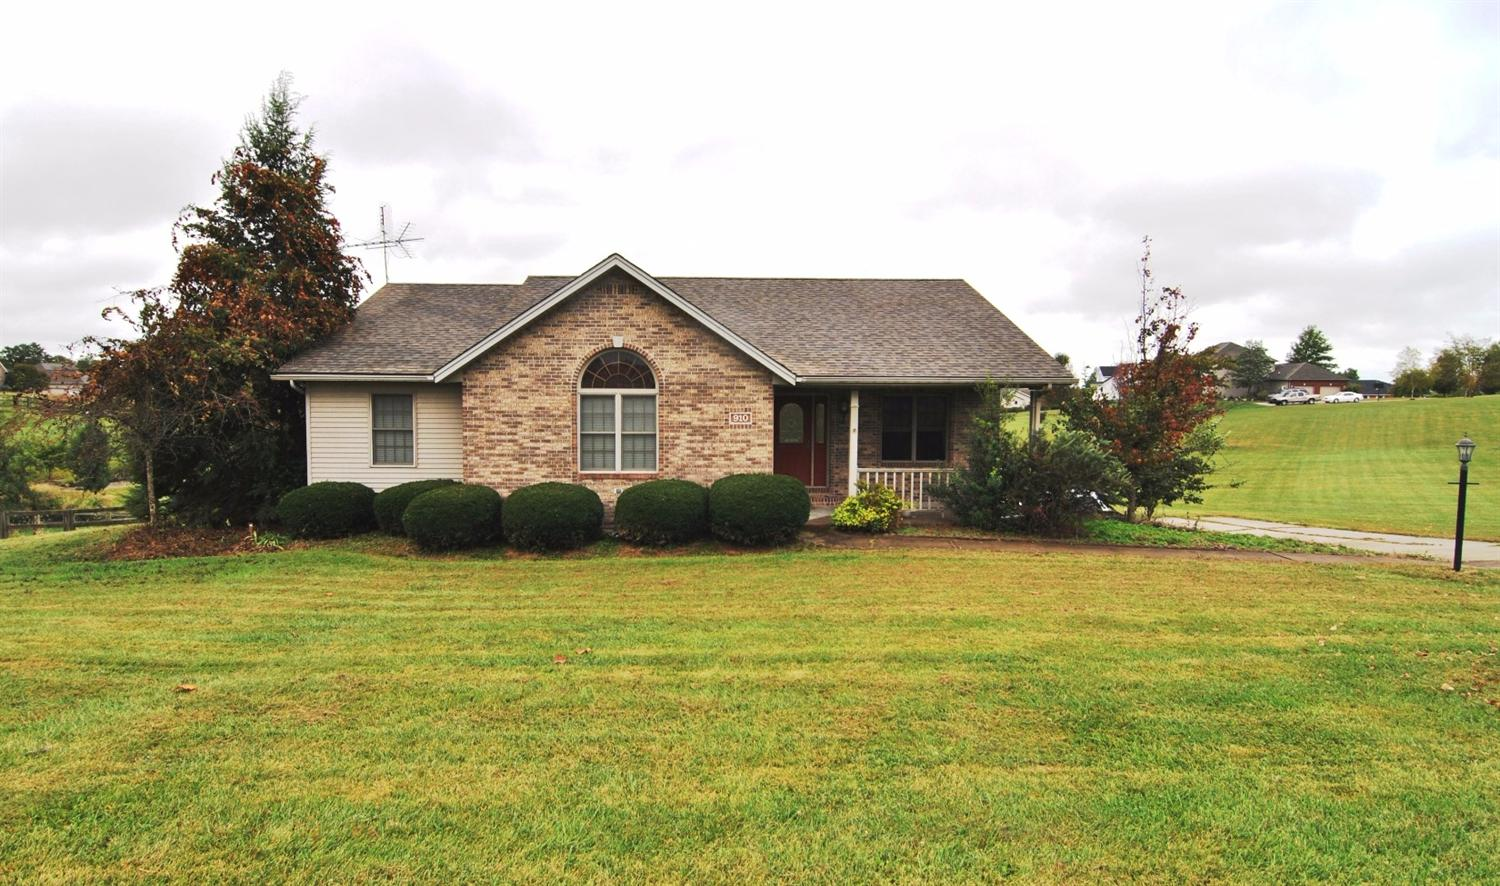 910 Dry Ridge Mount Zion Rd, Dry Ridge, KY 41035